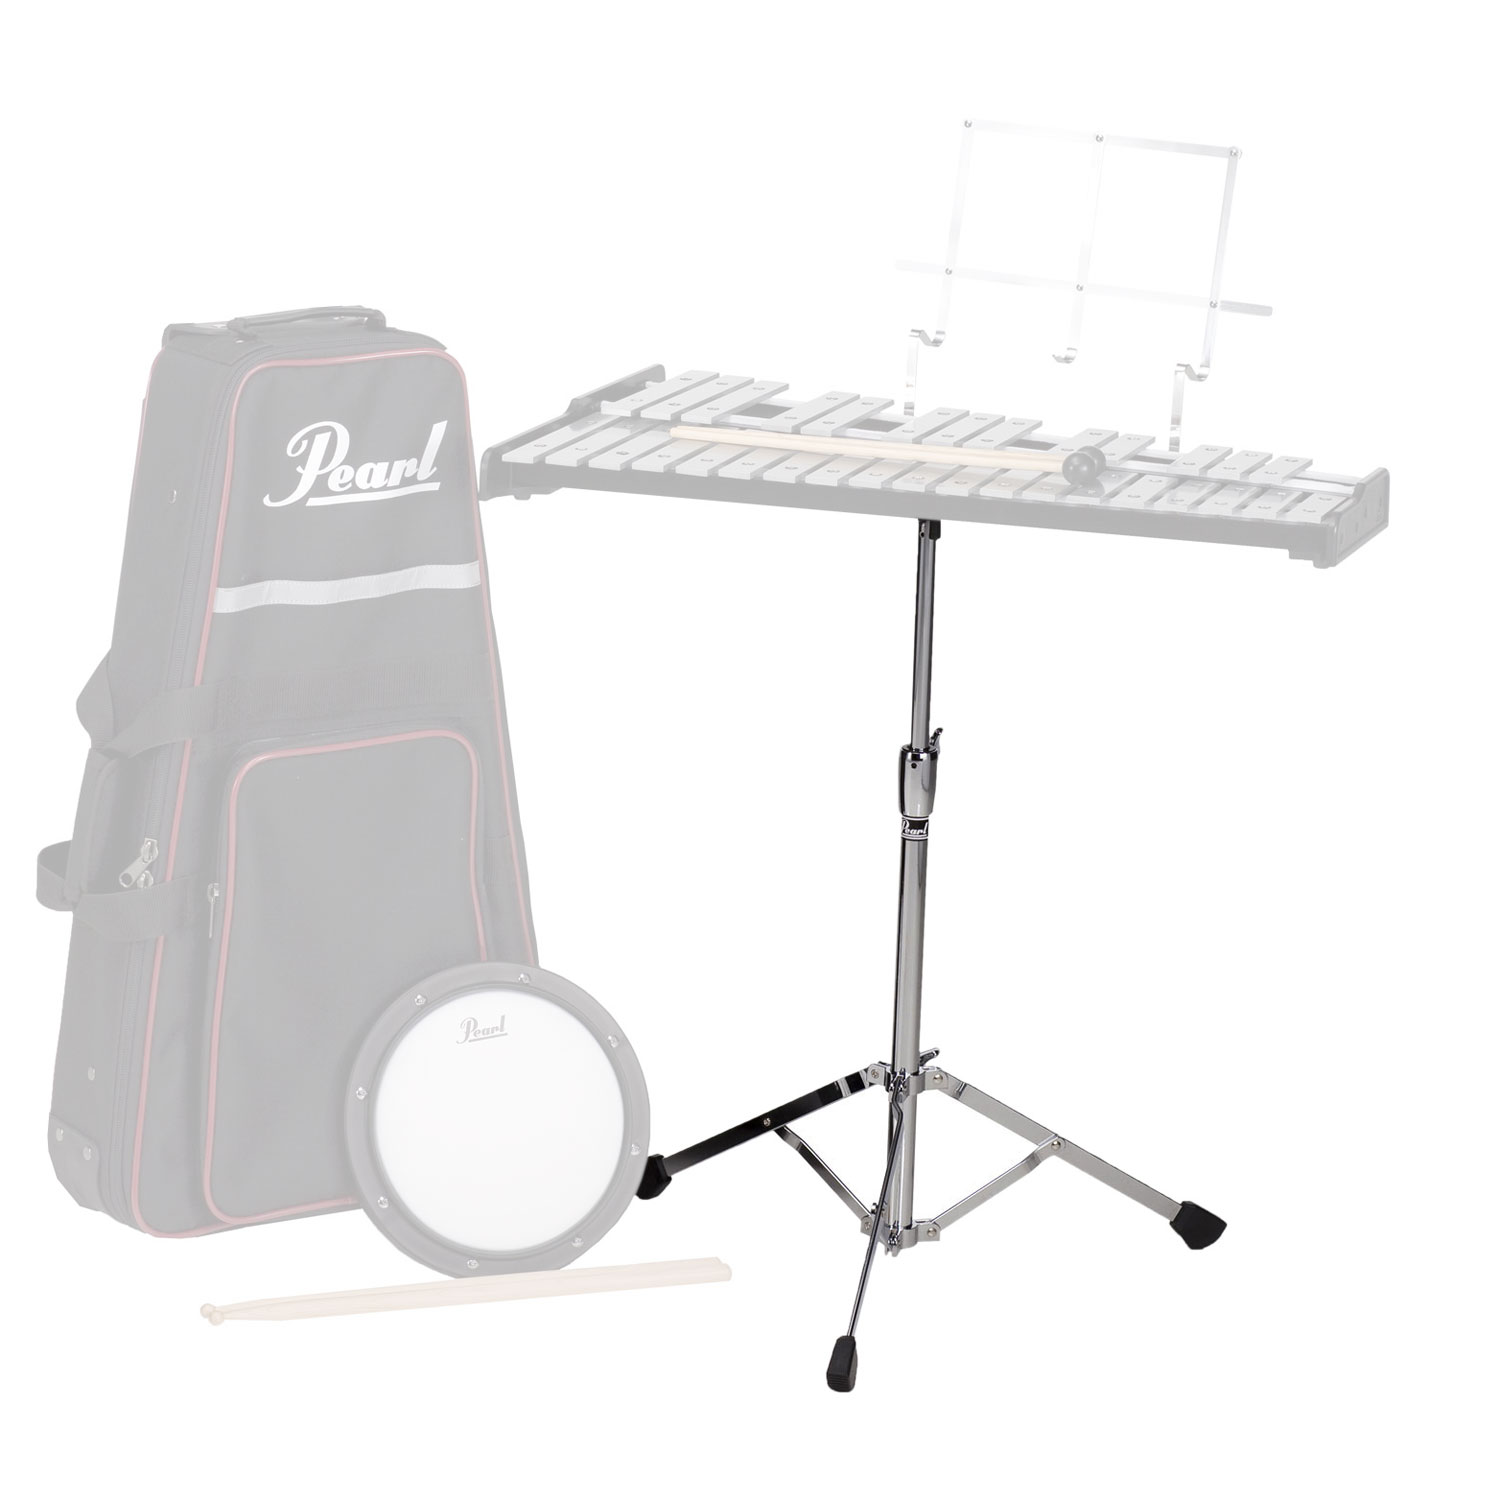 Pearl Stand for PK-800 or PK-900